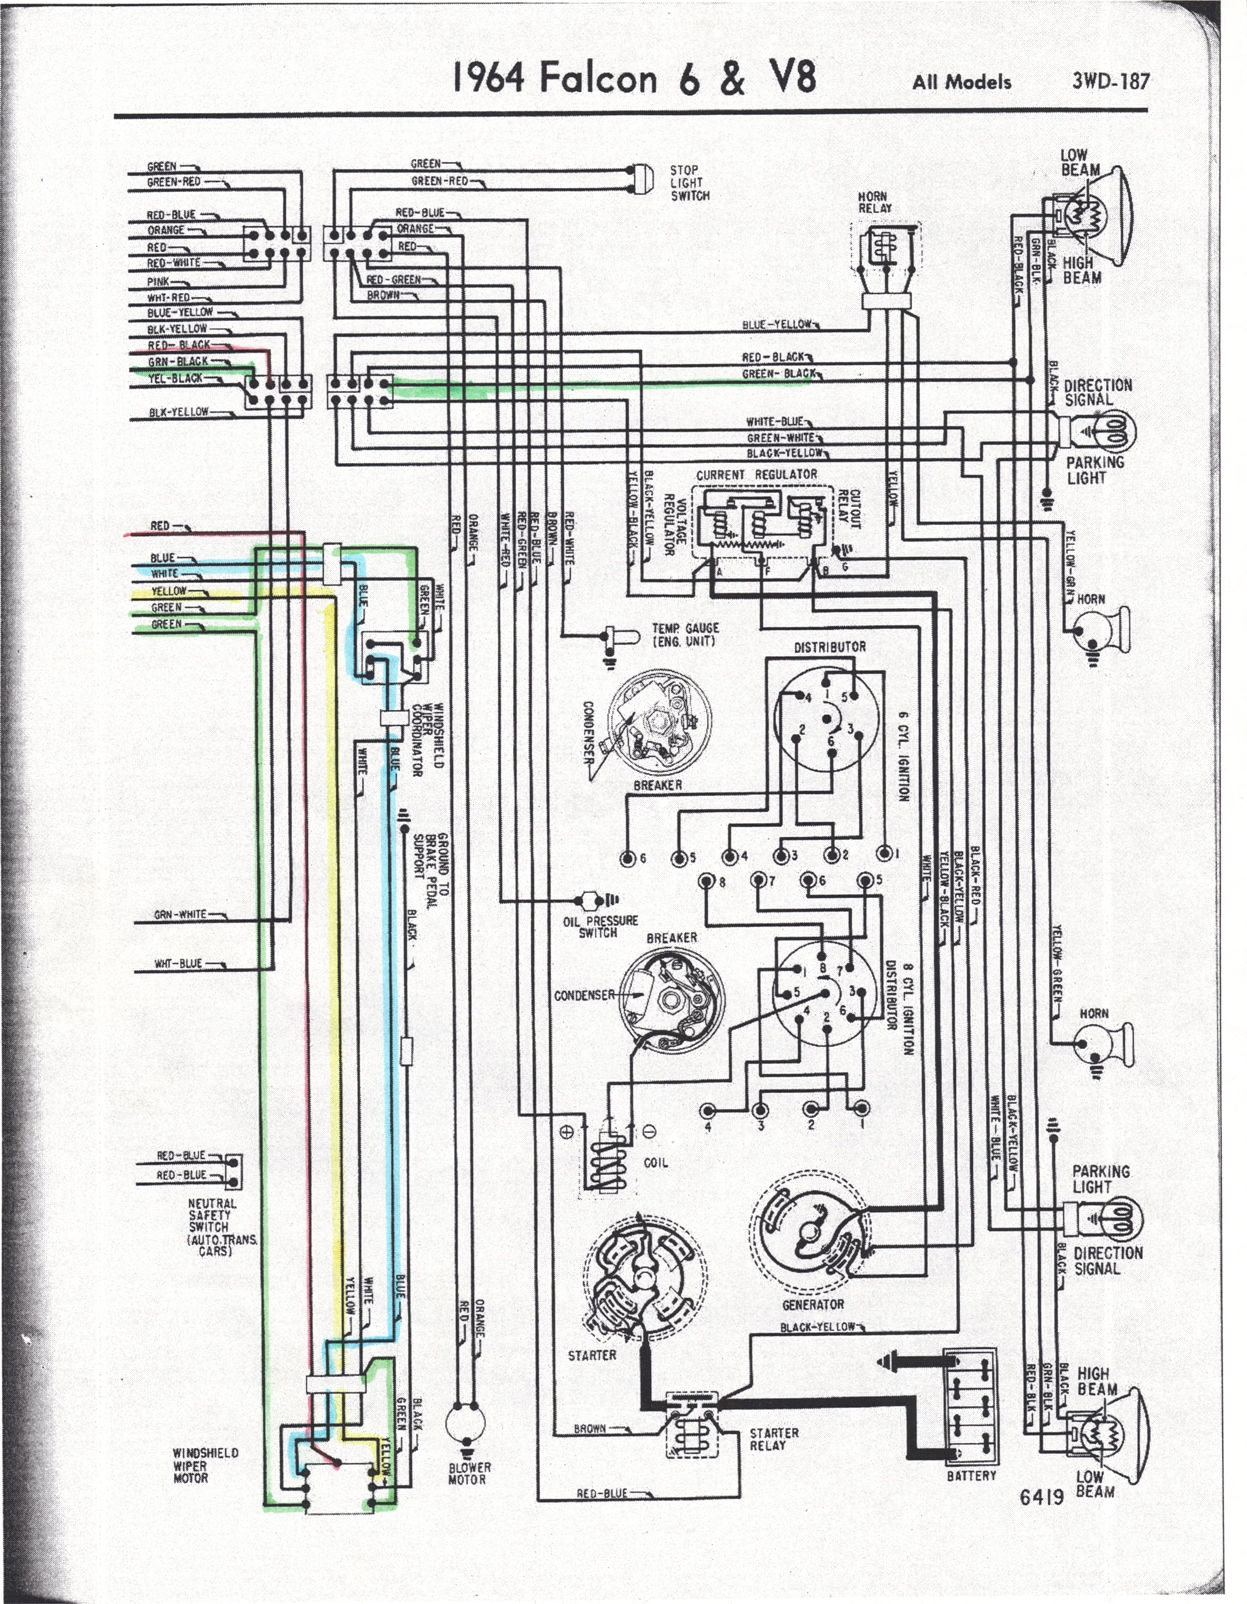 [QNCB_7524]  1966 Ford Falcon Wiring 1999 F 150 Xlt Fuse Box -  vww.kelengkeng.astrea-construction.fr | 1966 Falcon Wiring Diagrams |  | ASTREA CONSTRUCTION